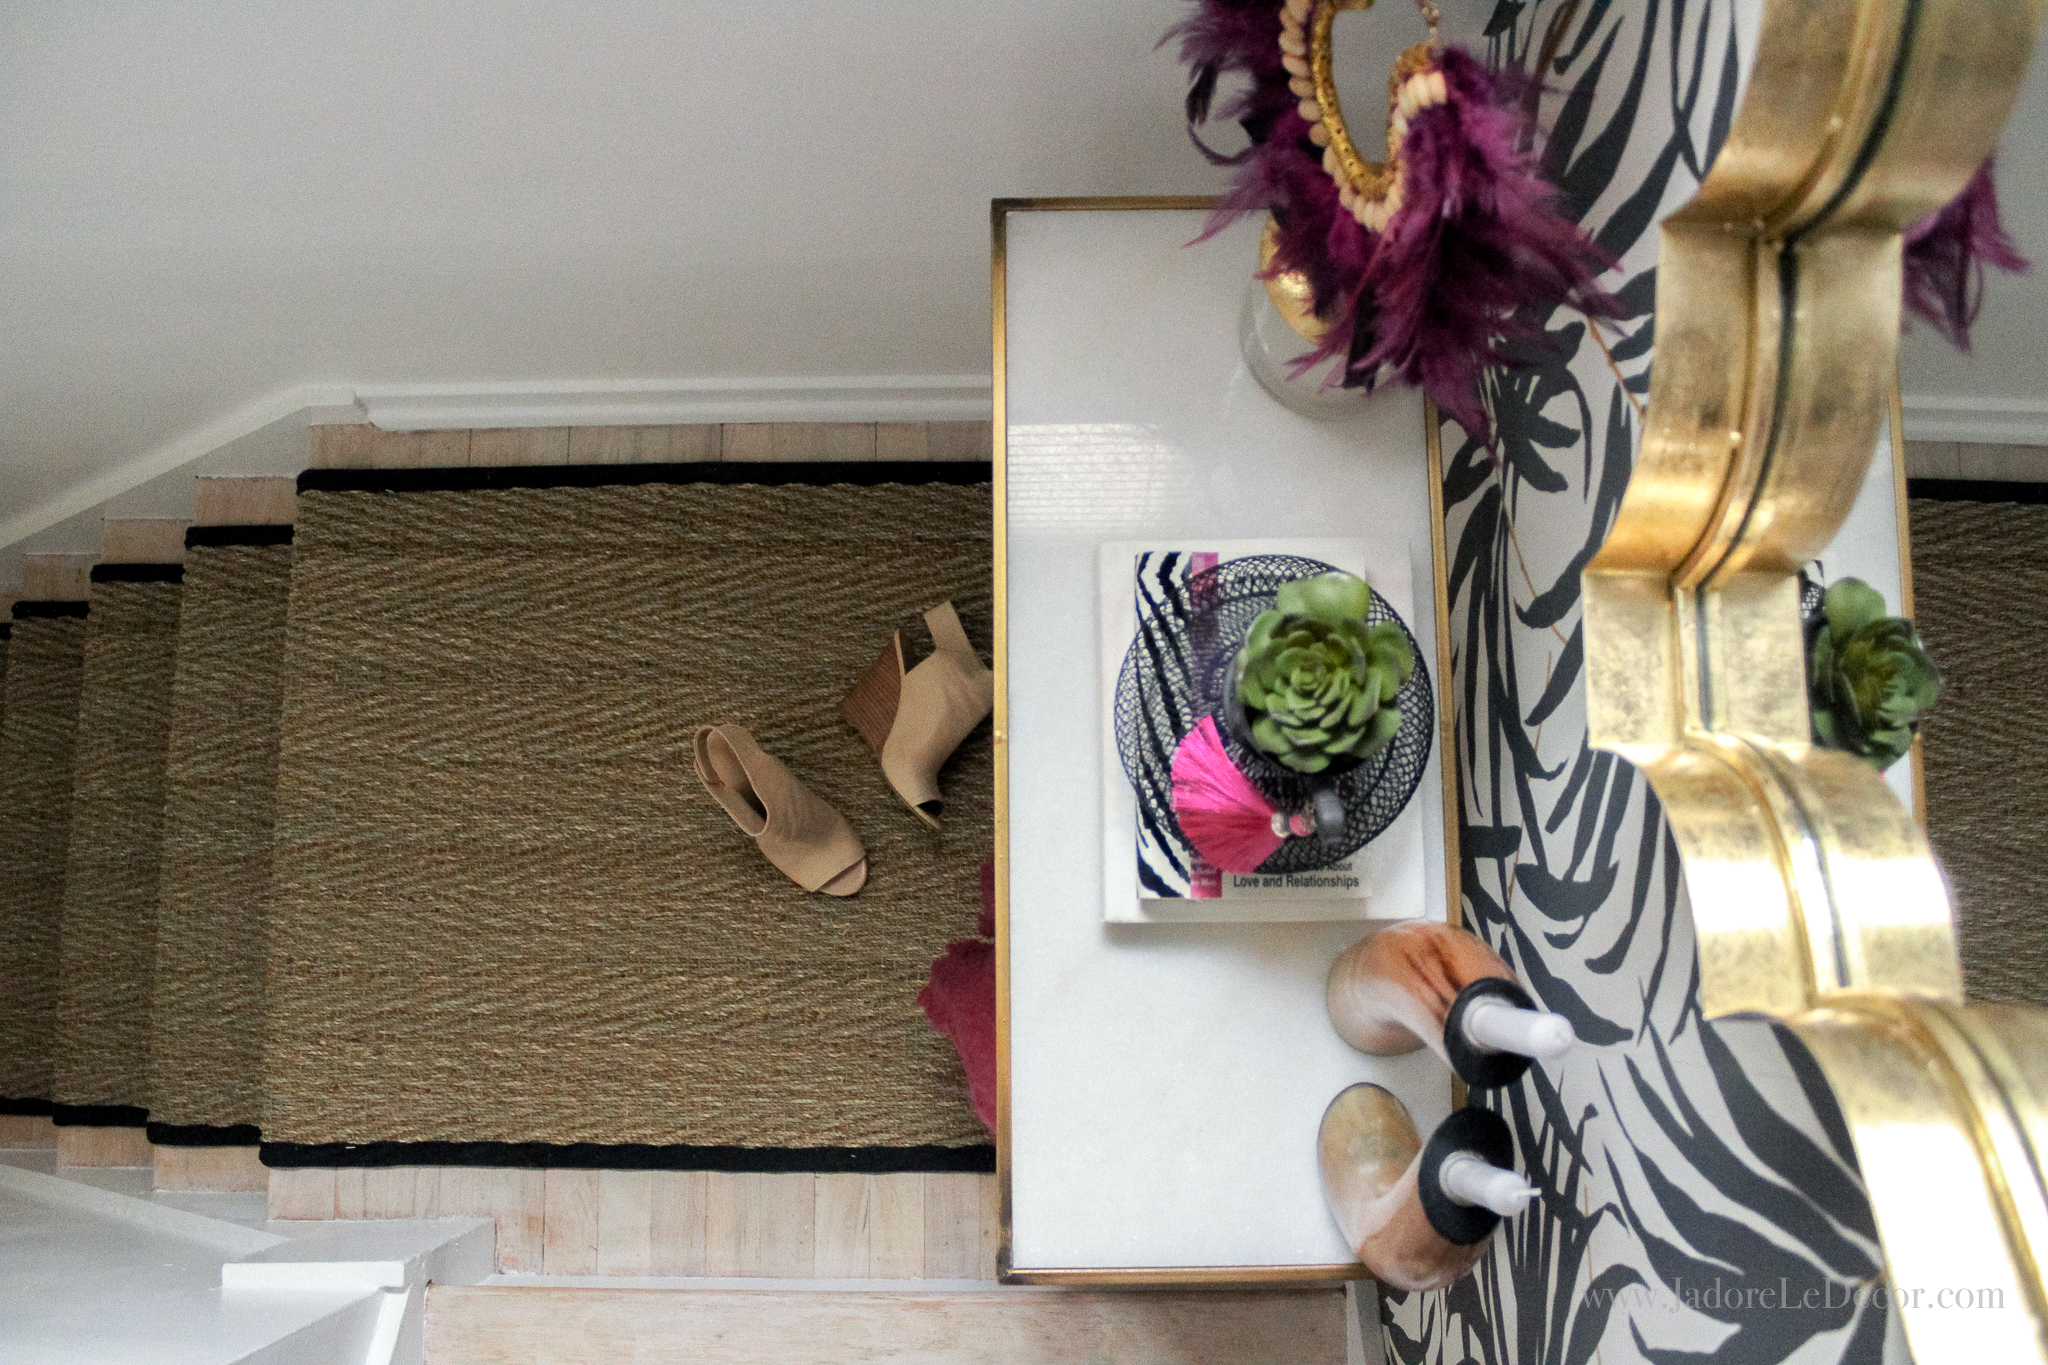 Part 2 of a 2-part series that defines what global bohemian chic is and shows you how to curate the look at home. | www.jadoreledecor.com/blog